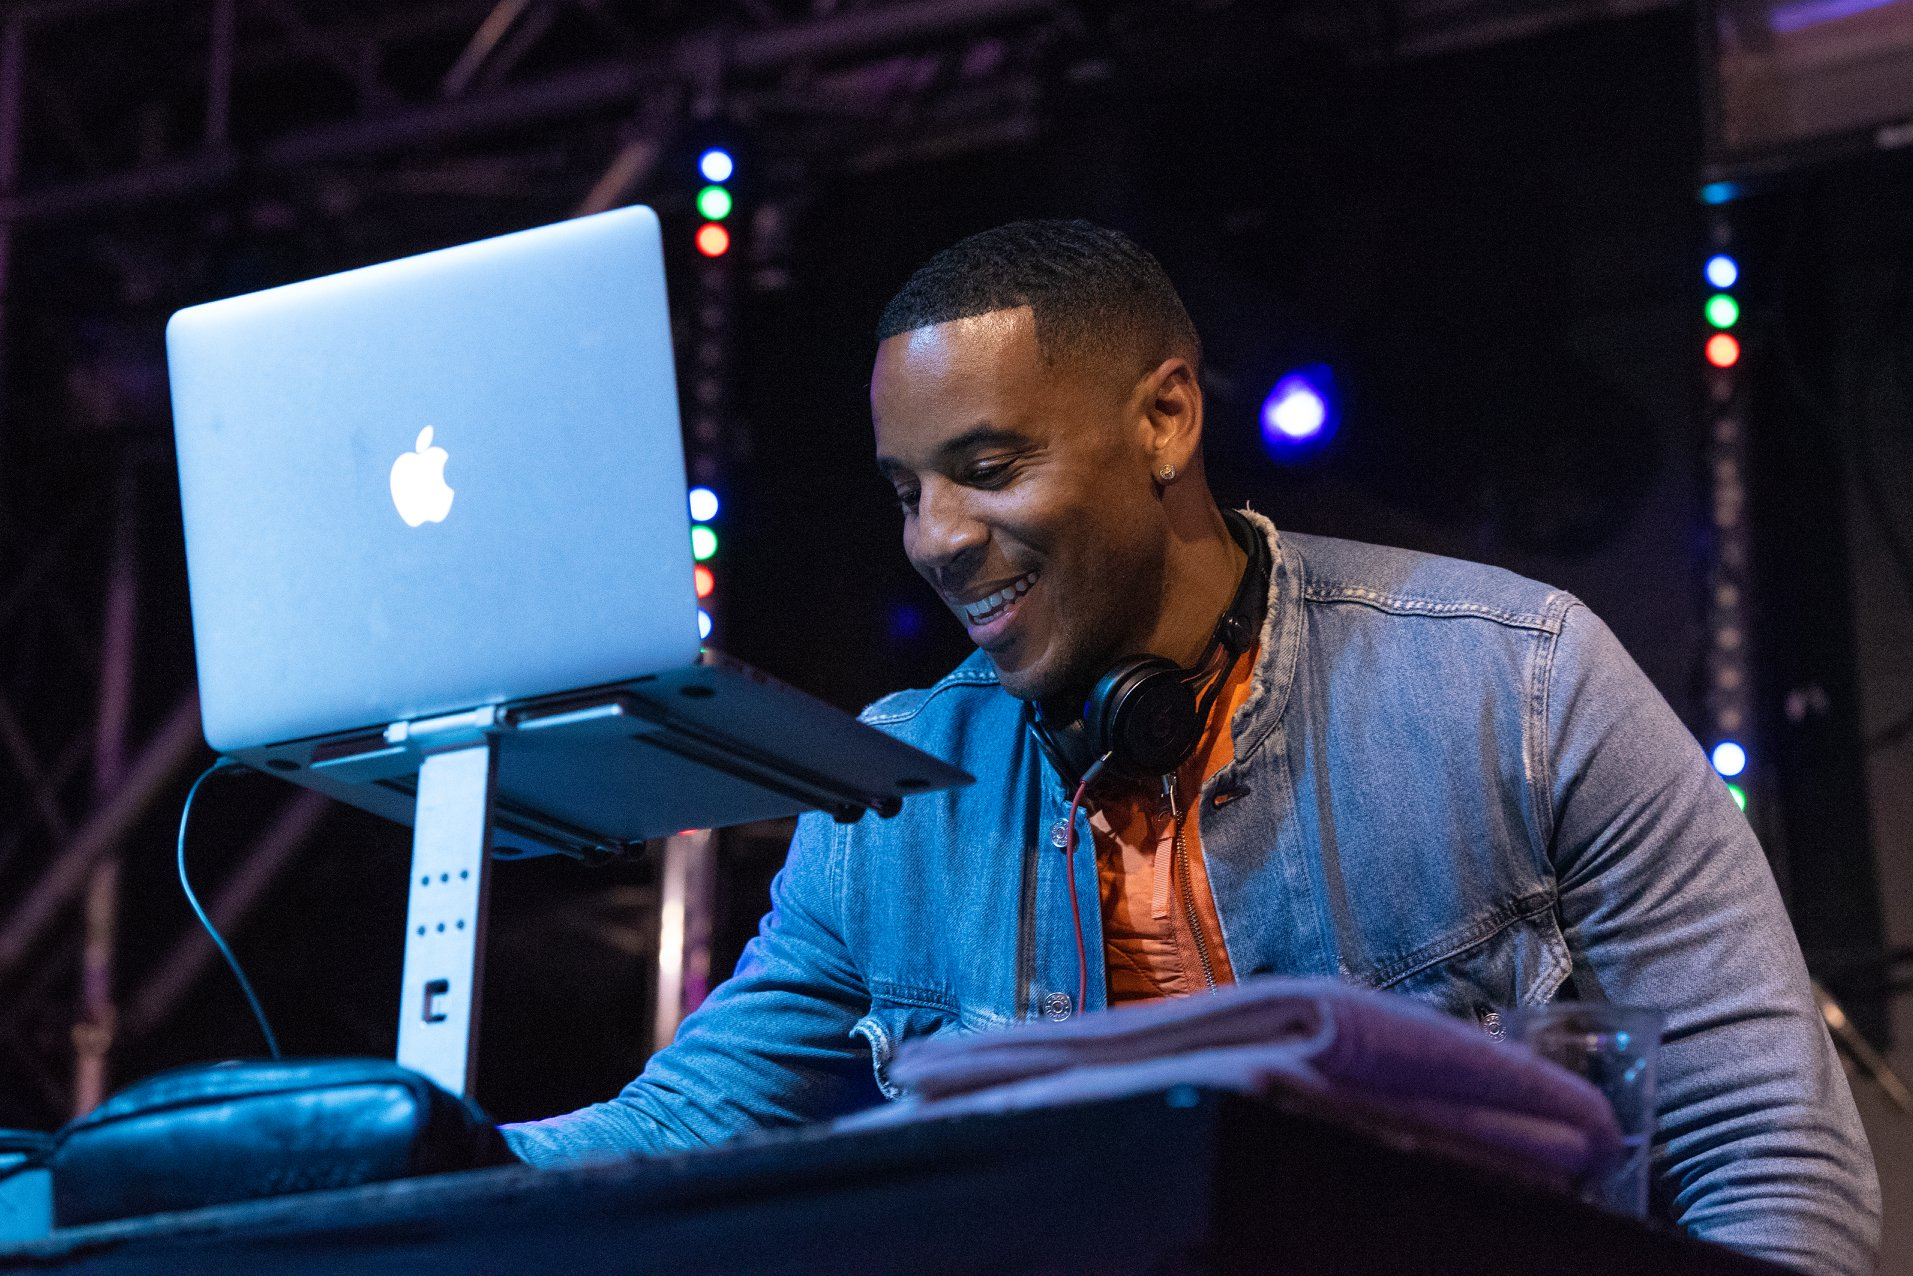 Eklectica FESTIVAL NEWS: Reggie Yates has hit the Outwoods stage here at #Eklectica2018!